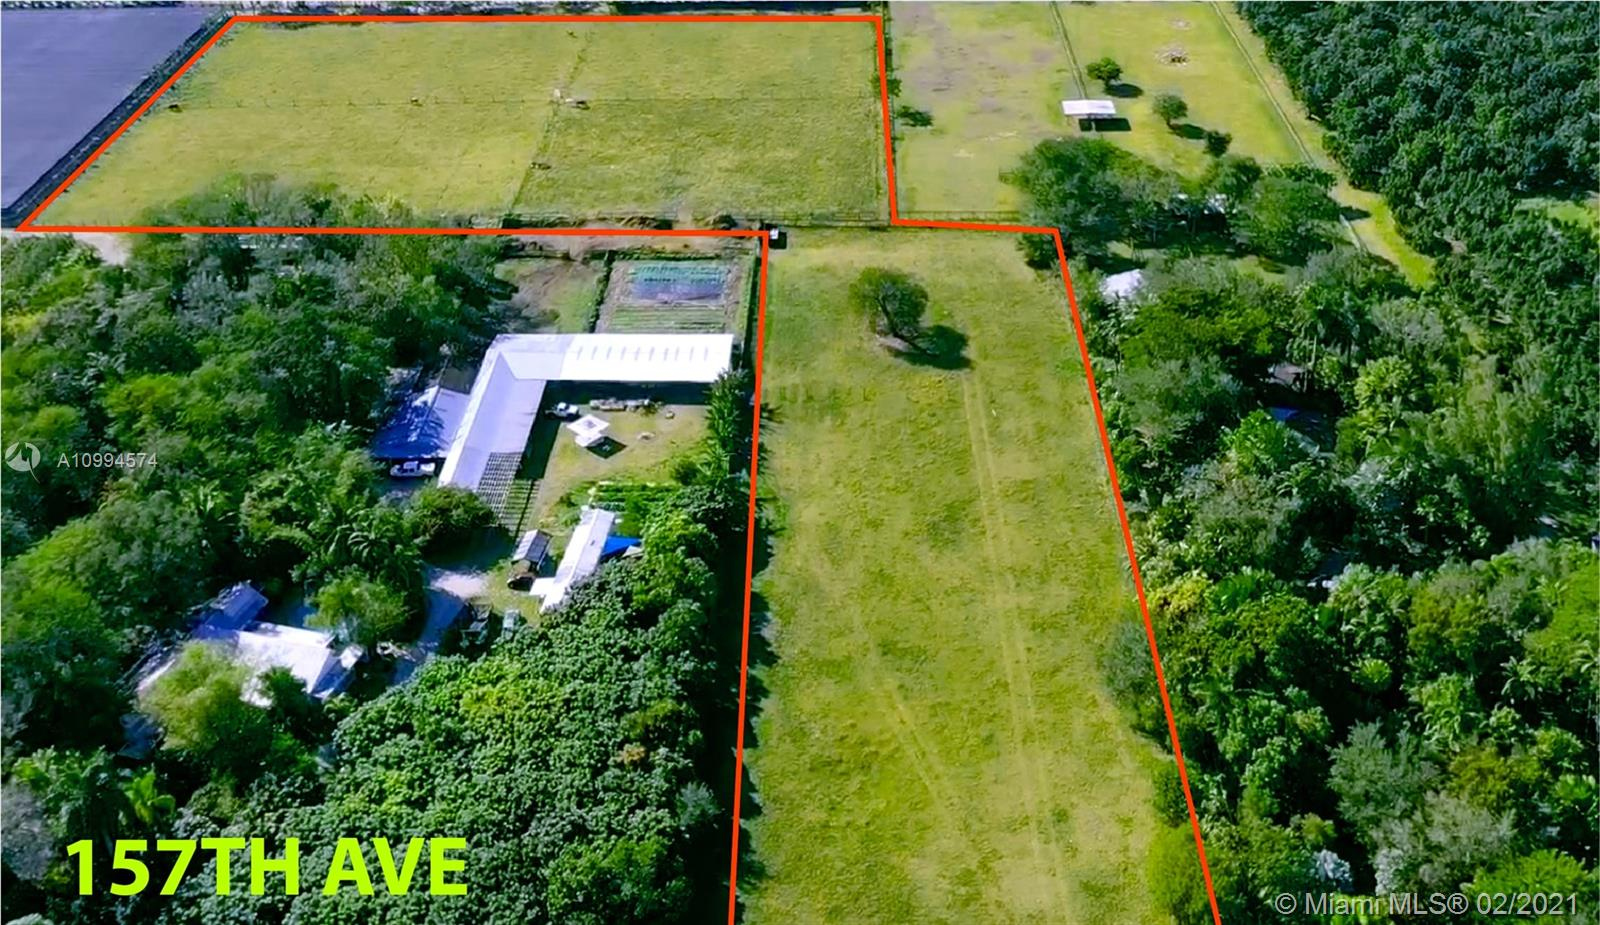 Details for 22860 157th Ave, Miami, FL 33170